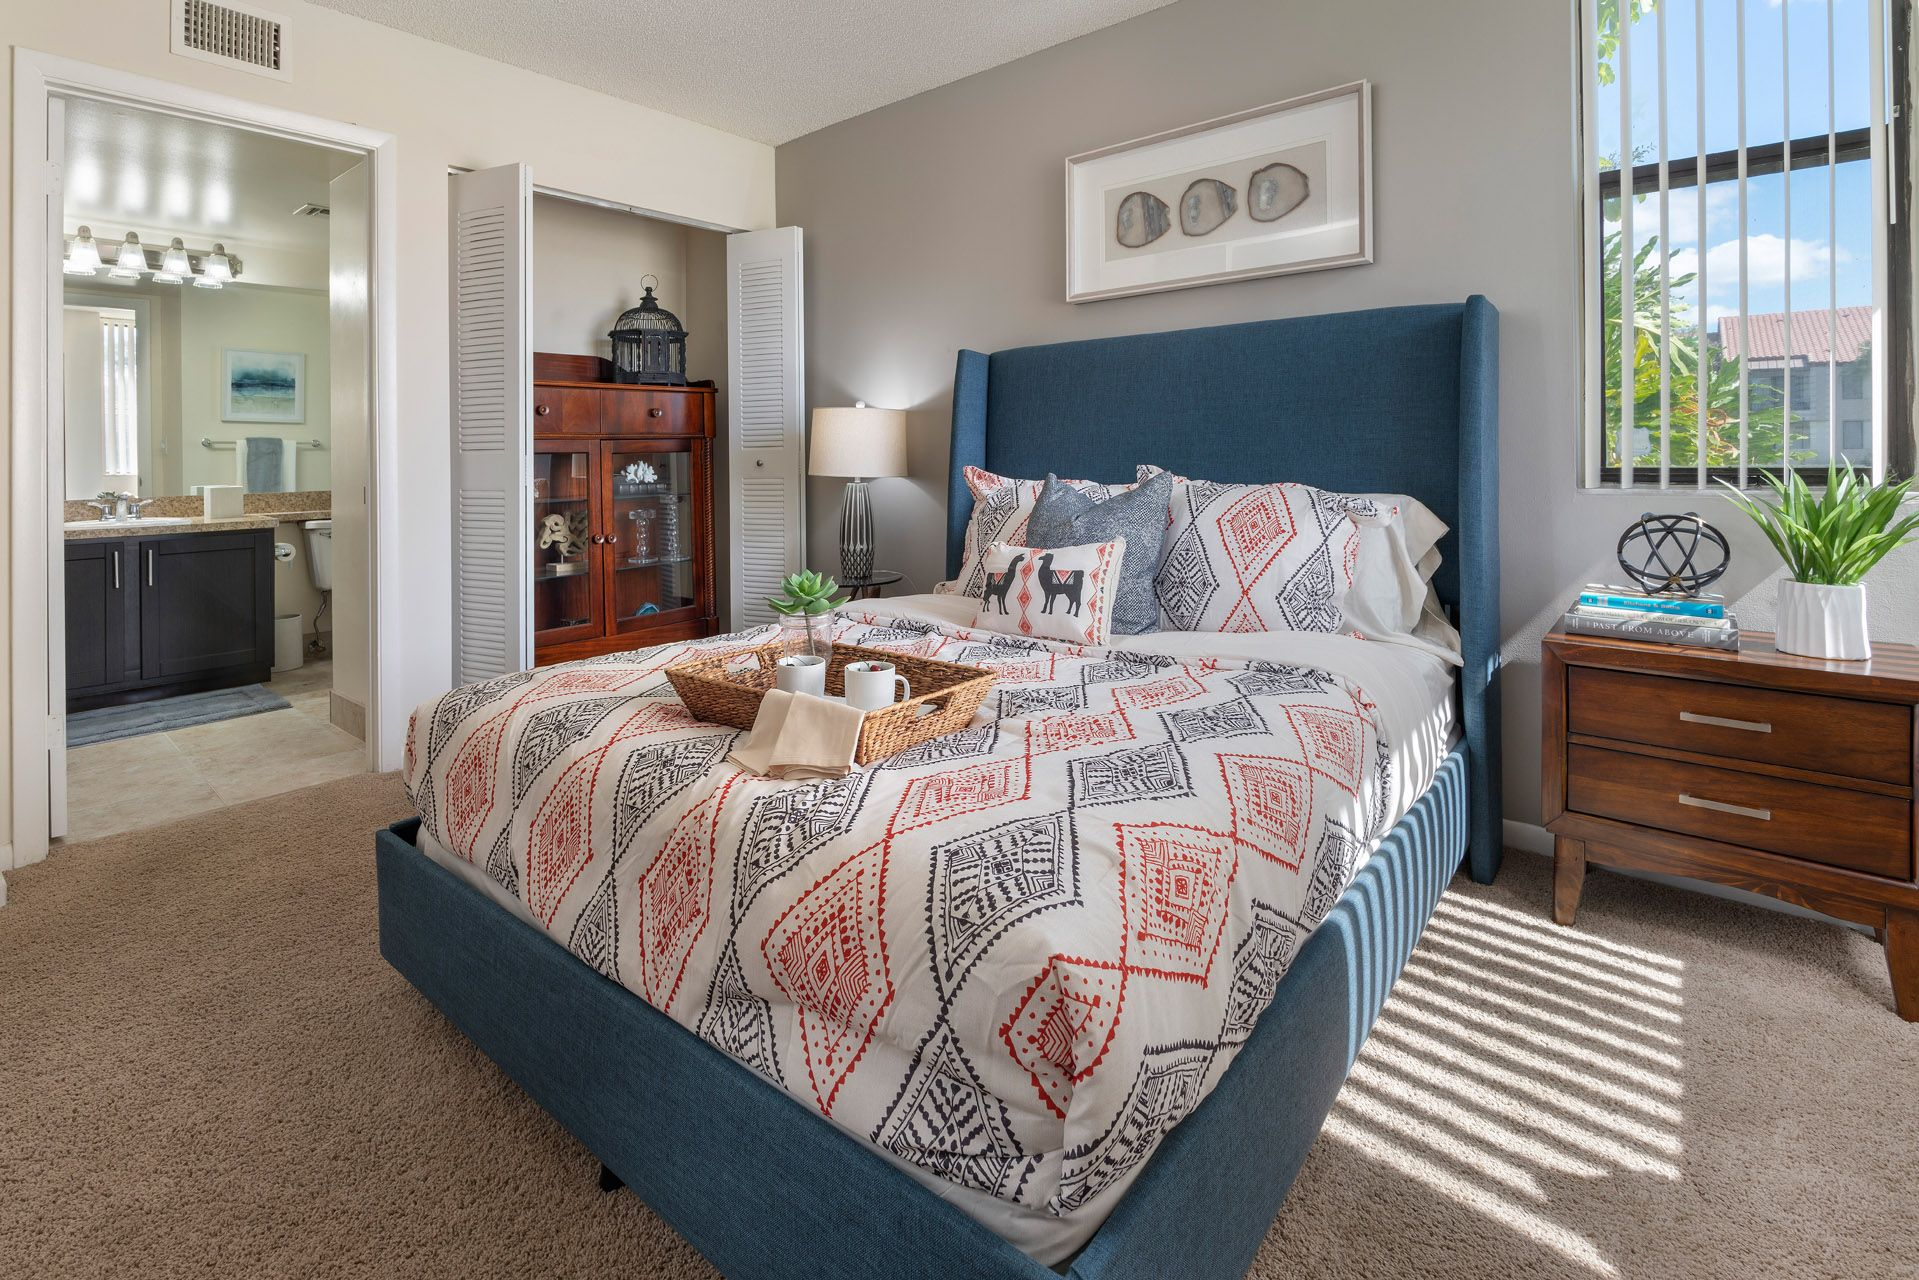 Large bed in airy apartment bedroom